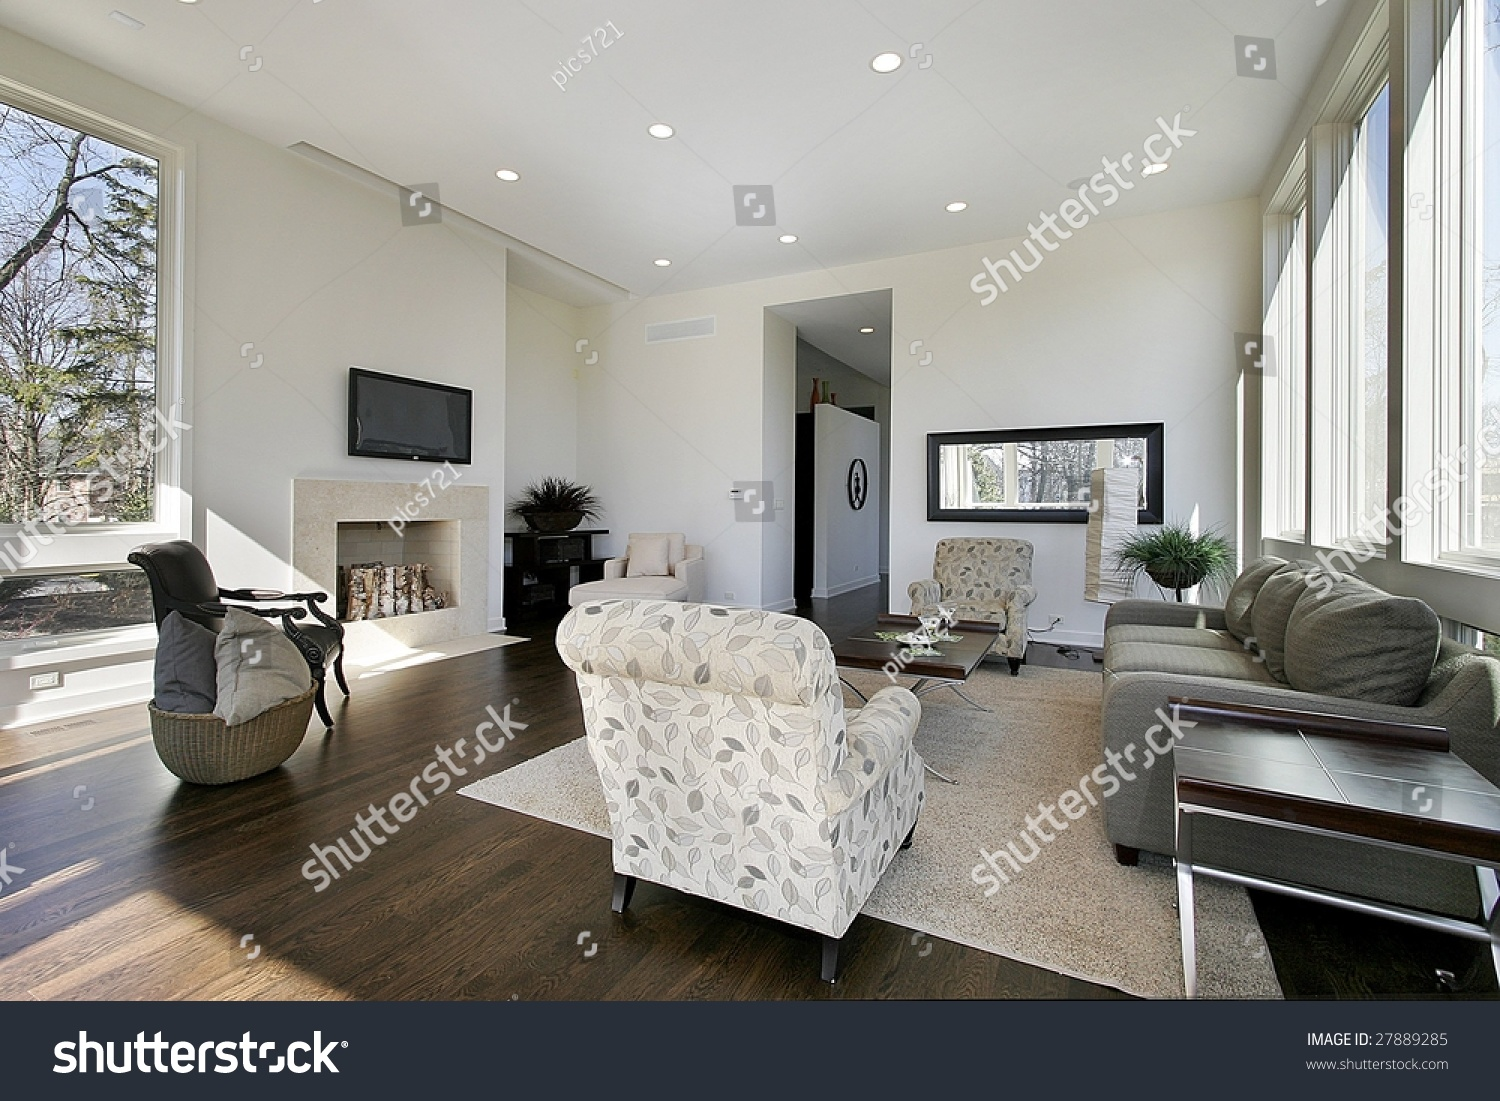 Sleek living room in upscale home stock photo 27889285 for Sleek living room